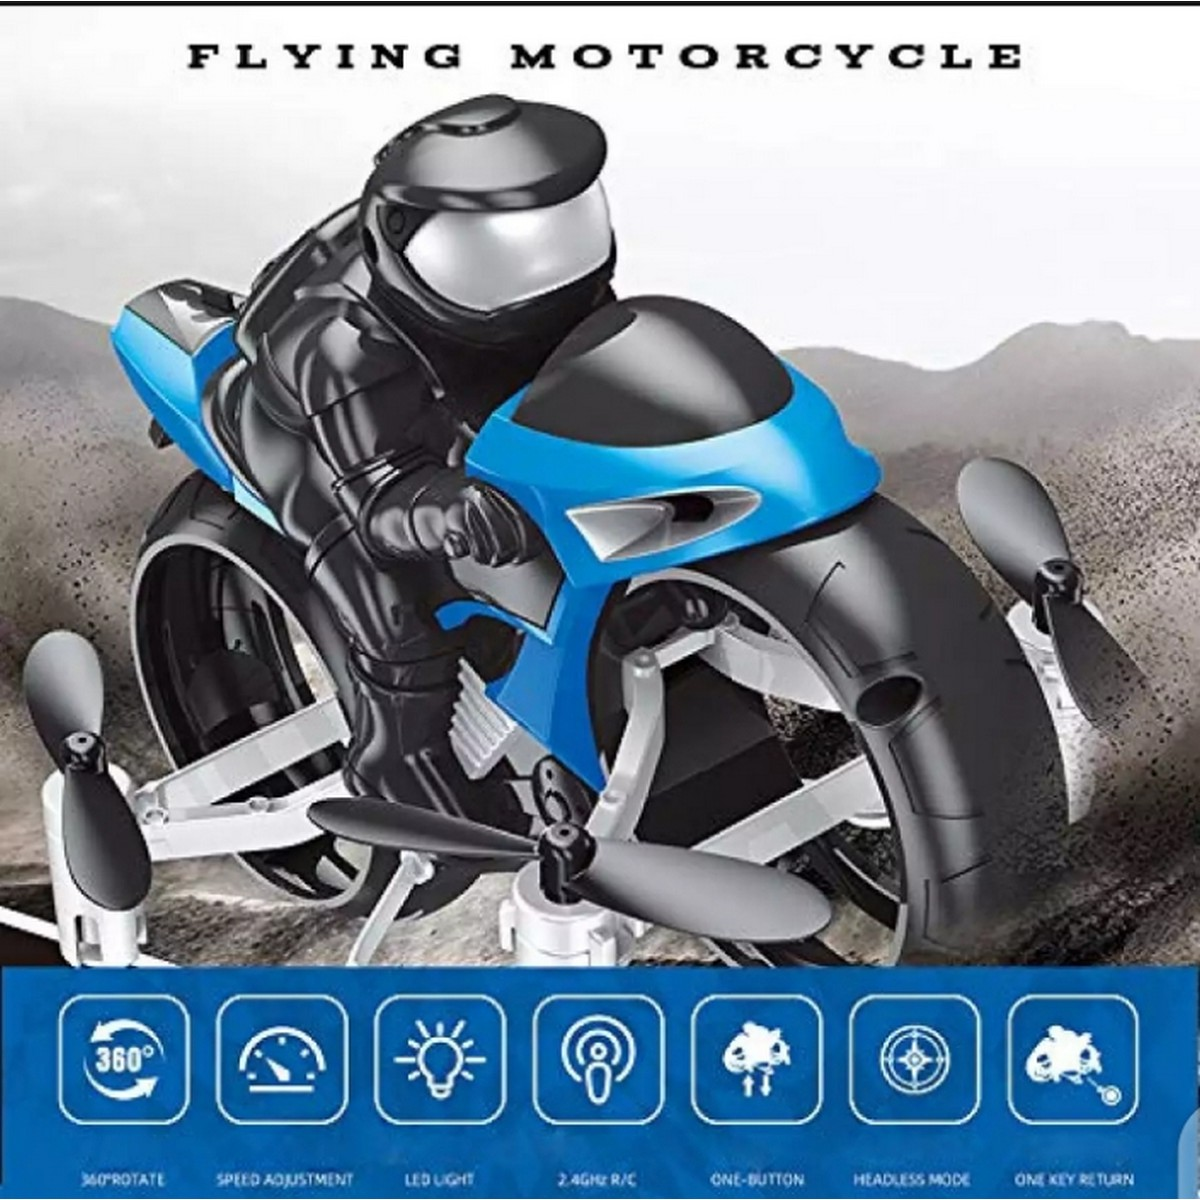 Flying Motorcycle 2.4Ghz RC Remote Control Helicopter, Land and air Amphibious 2 in 1 Remote Control